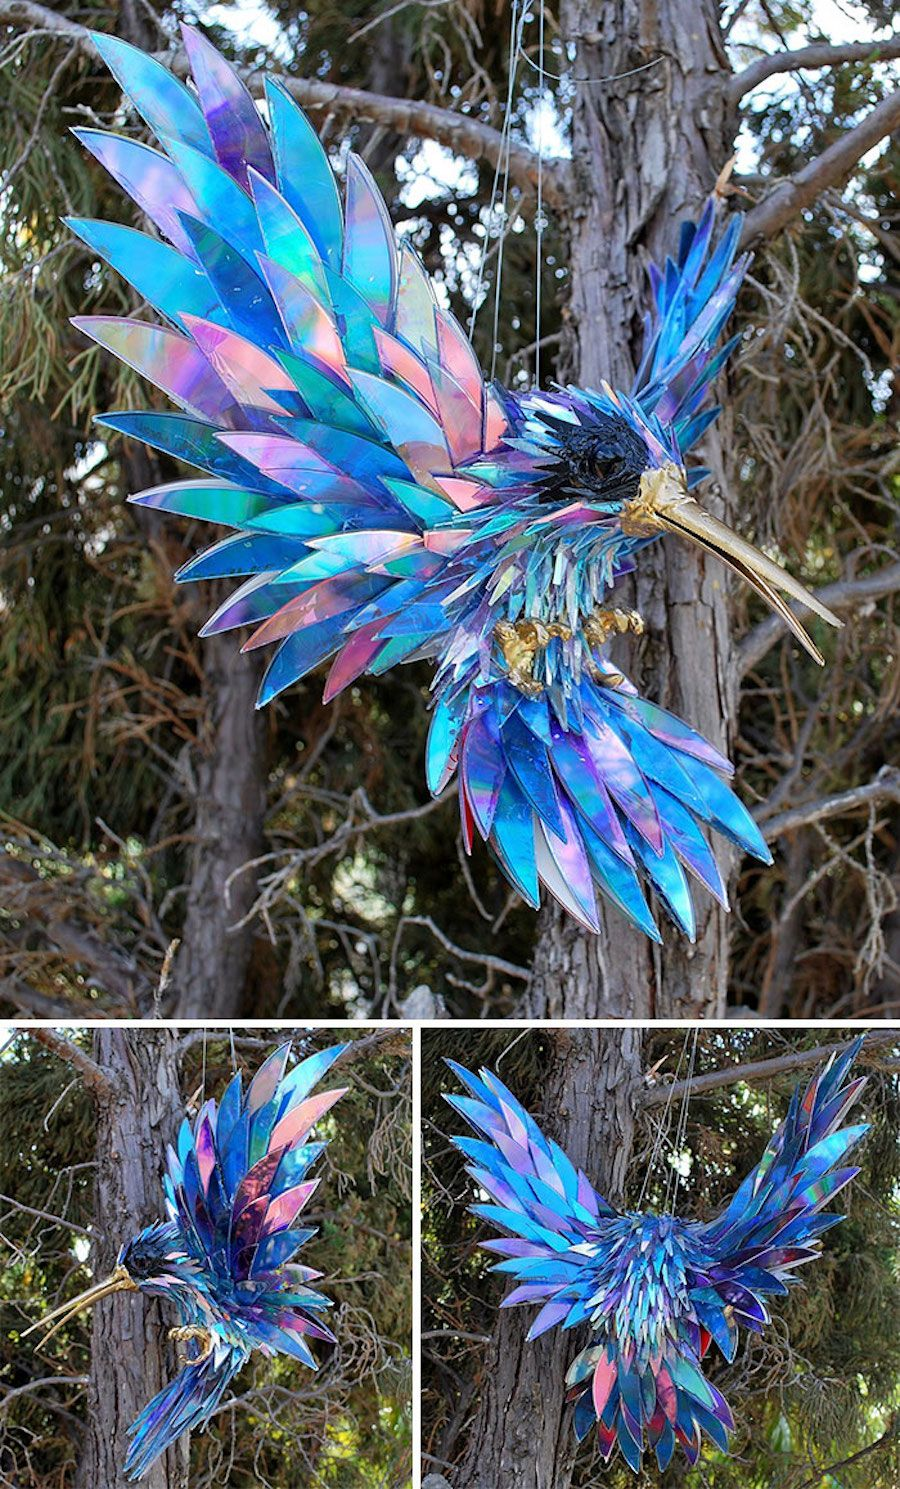 Artist Recycles Old CDs by Turning Them into Adorable Animal Sculptures #recycledart